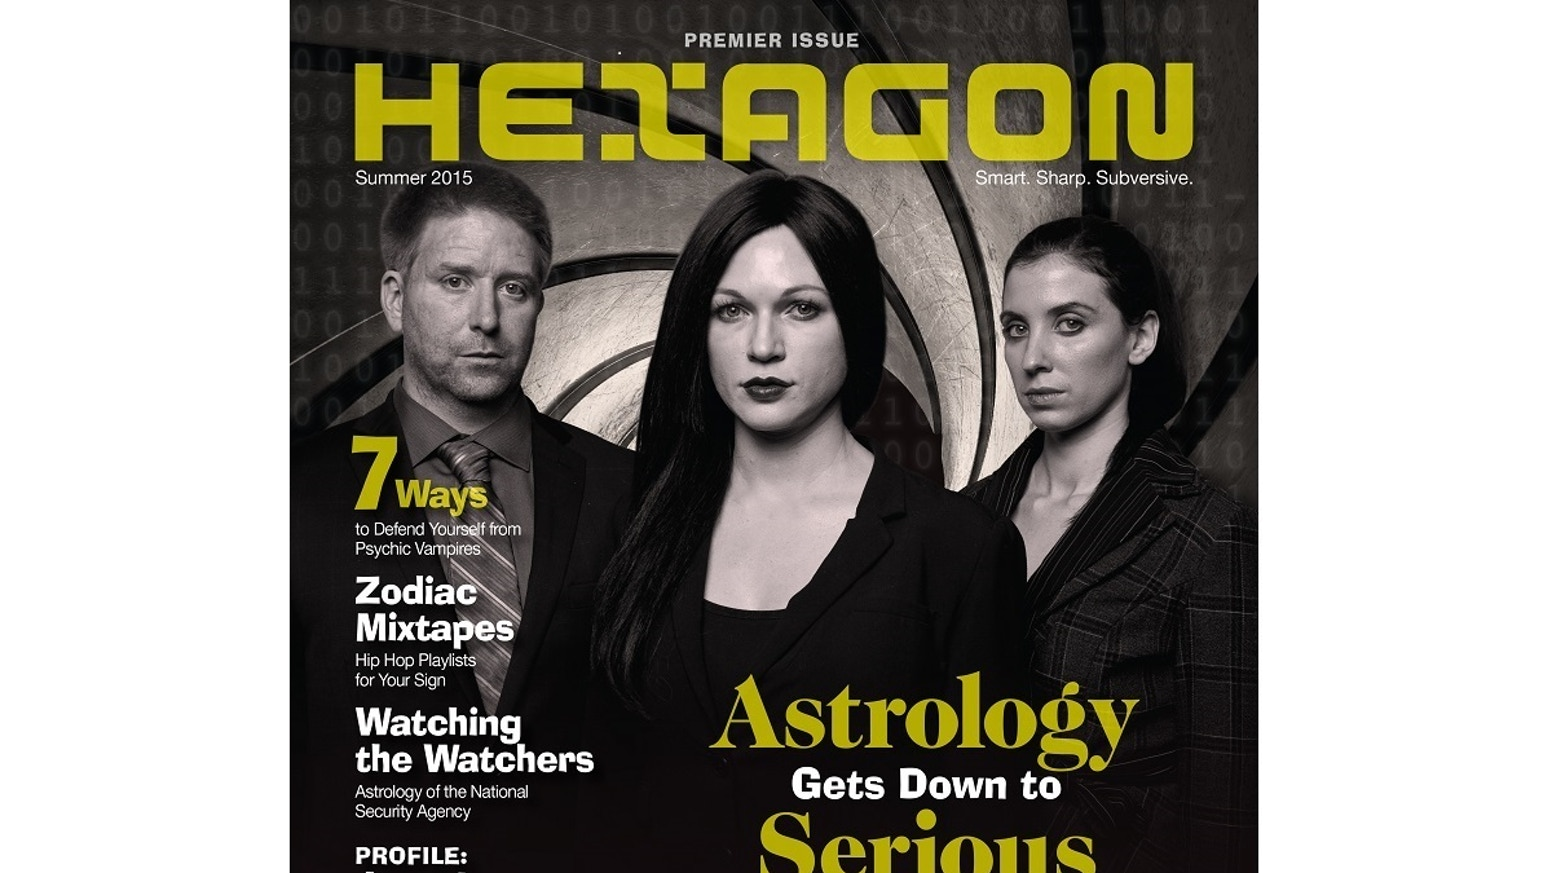 Hexagon Astrology Magazine by Matt Savinar » For tonight's full moon